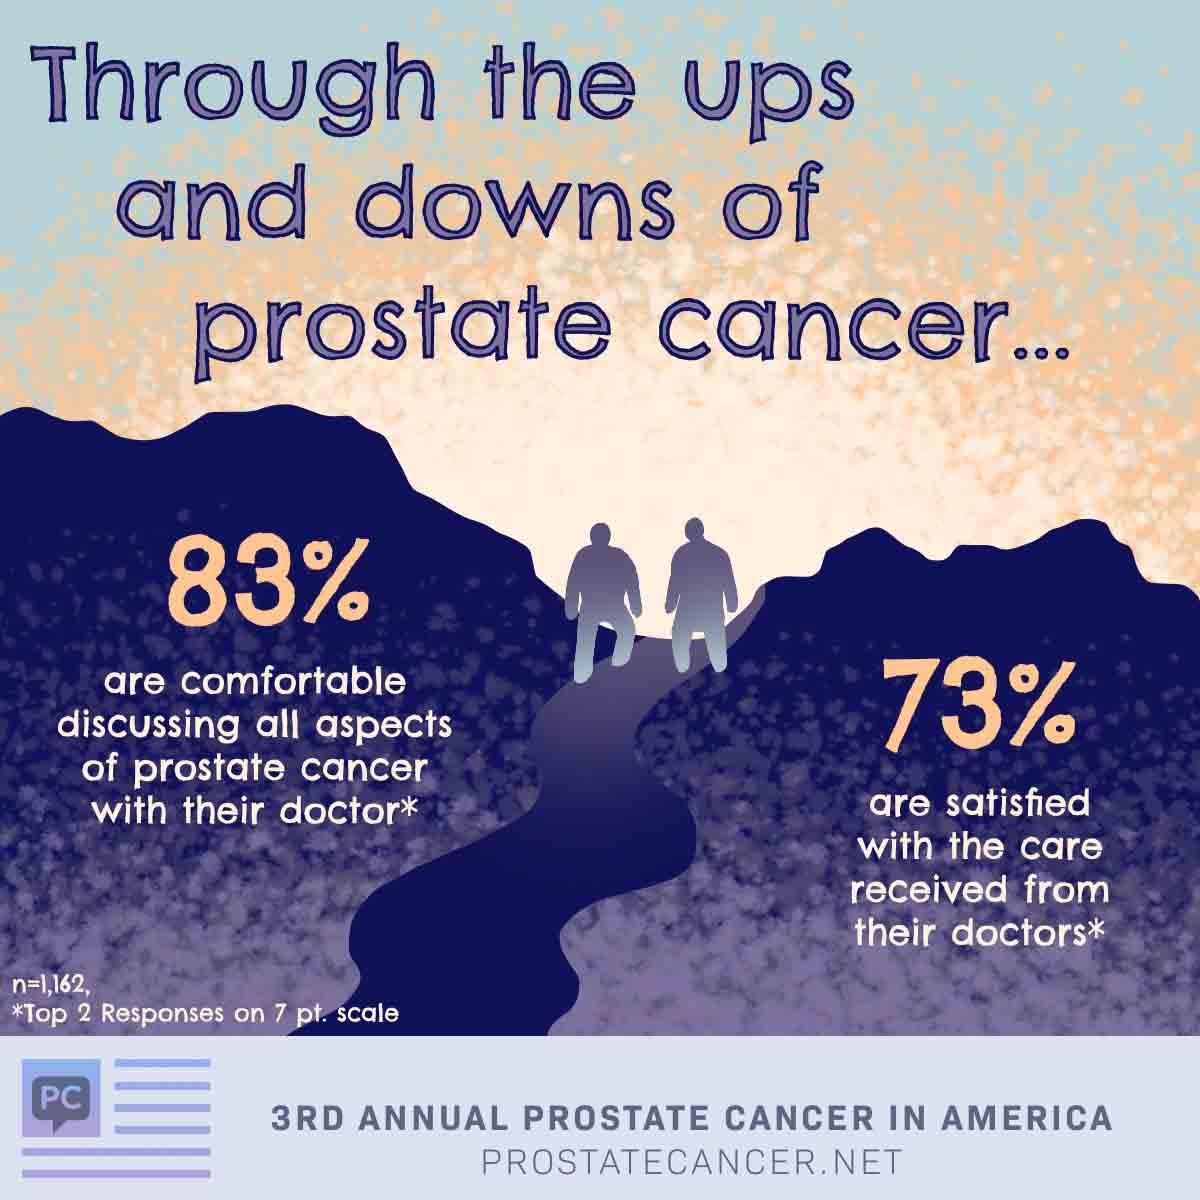 Through the ups and downs of prostate cancer 83% are comfortable discussing all aspects of prostate cancer with their doctor and 73% are satisfied with the care received from their doctors.